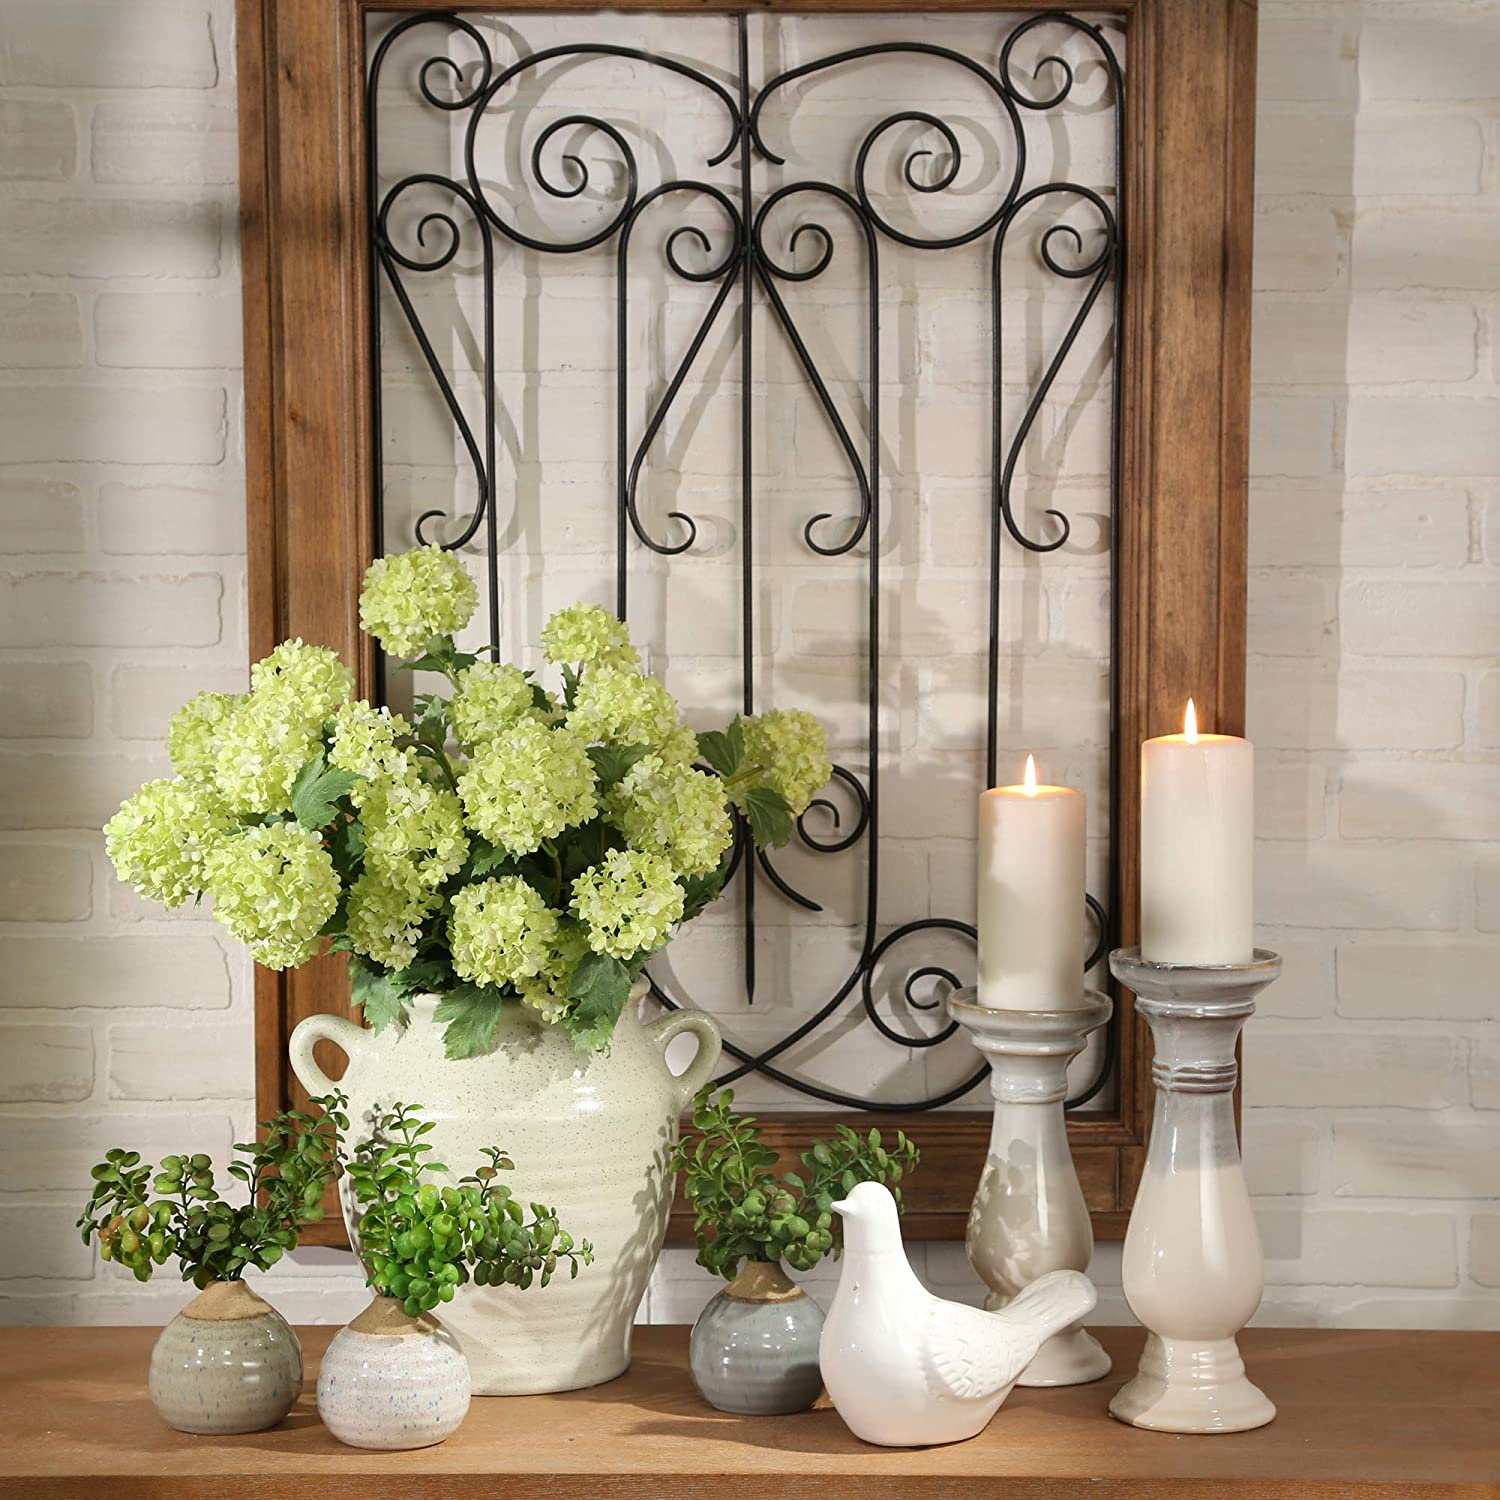 Sagebrook Home 13900-05 Ceramic 9.75 Candle Holder Gray//White 4.25 x 4.25 x 9.75 inches